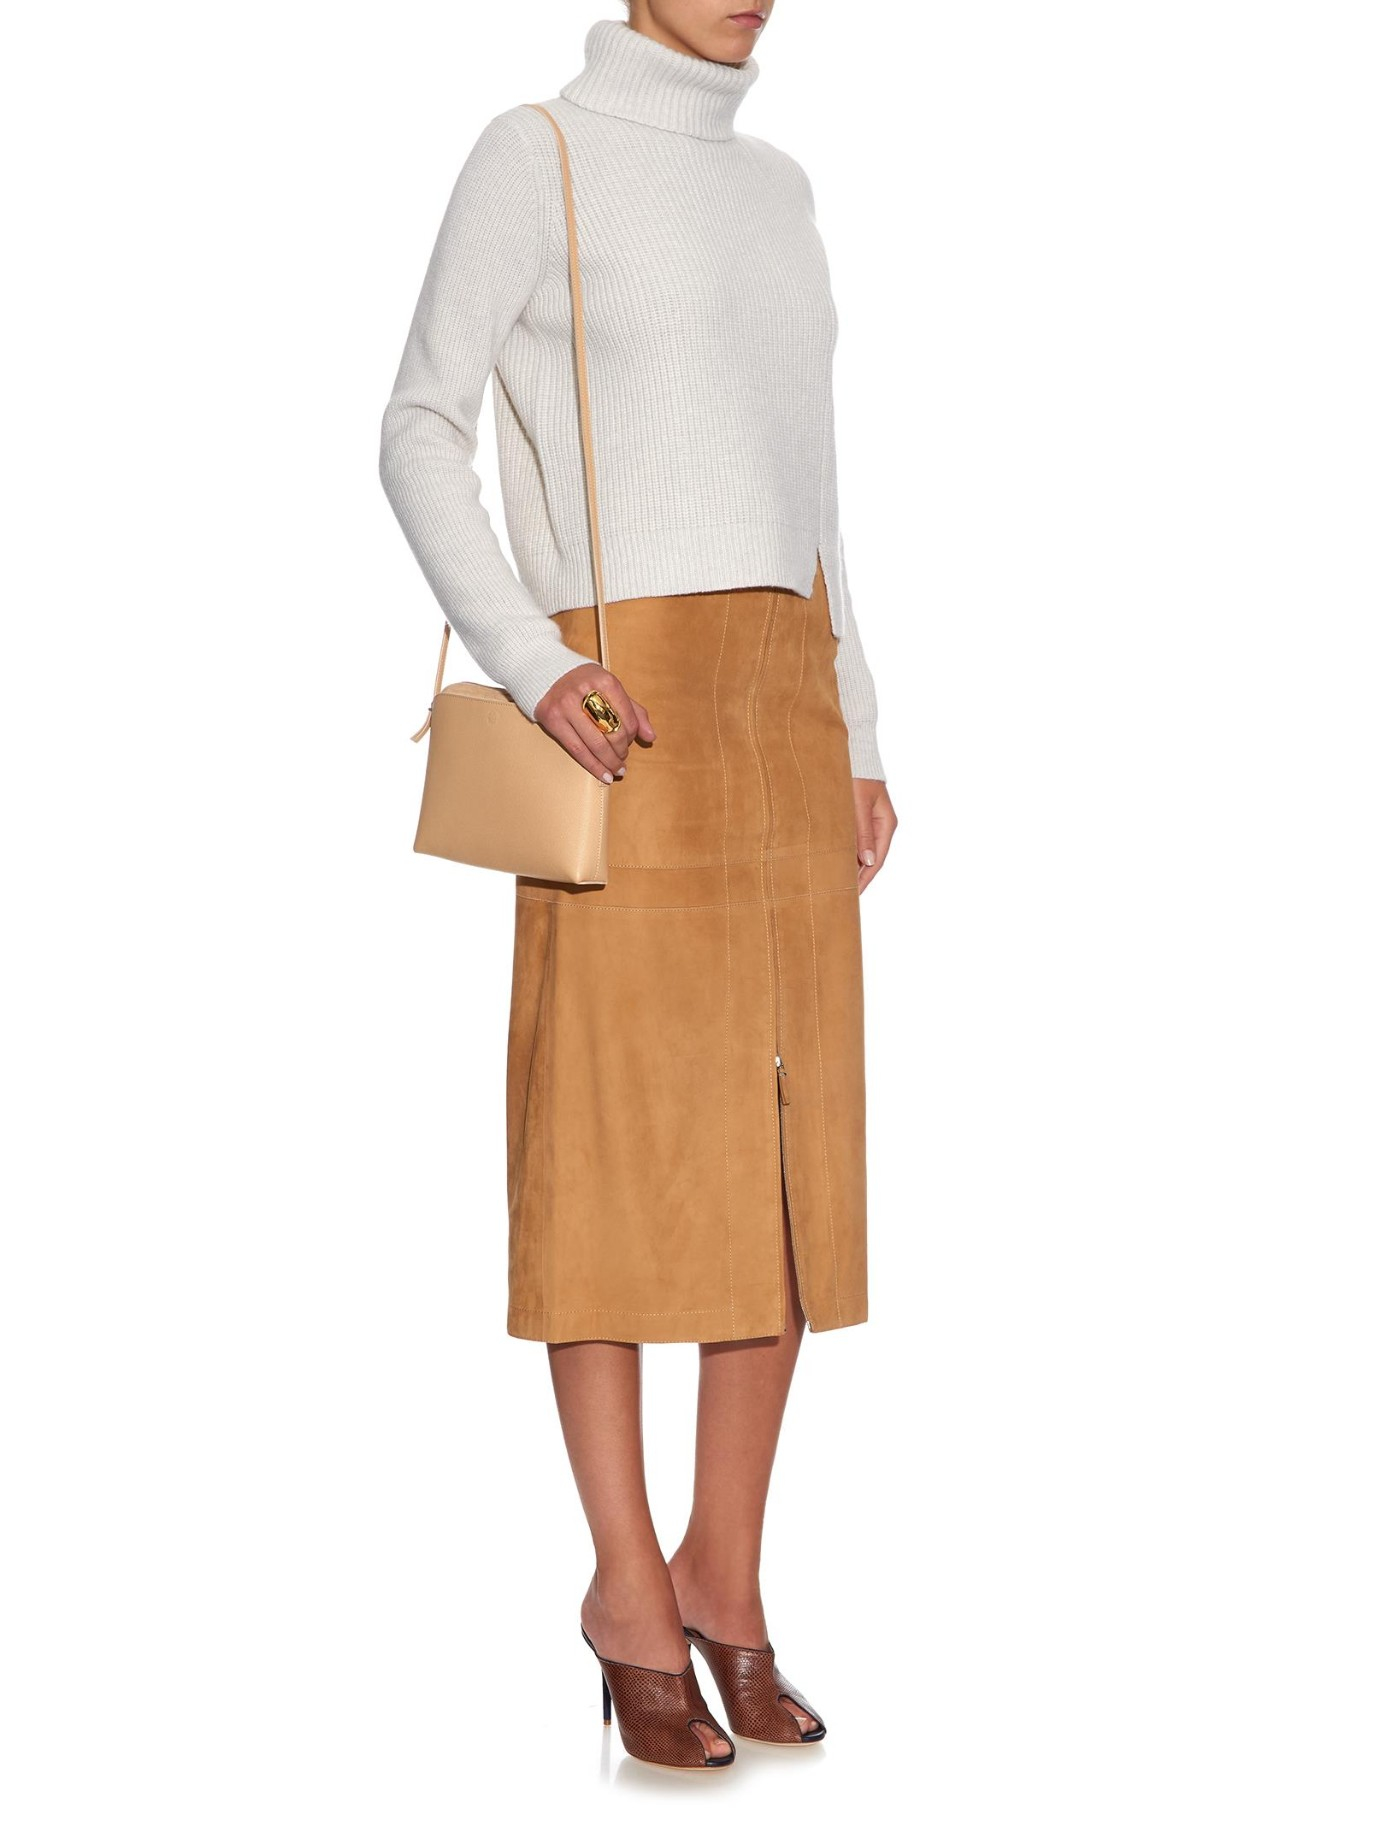 The row Multi Pouch Cross-Body Bag in Natural